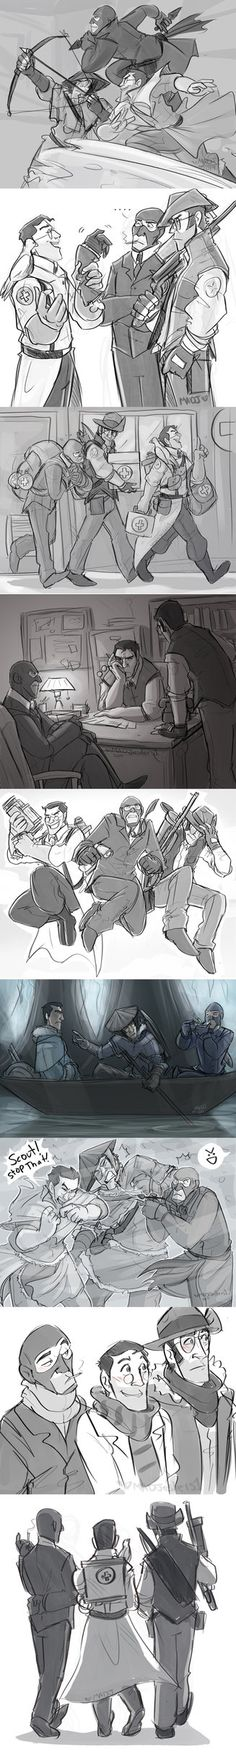 TF2- The Support Team Sketches by MadJesters1 on DeviantArt